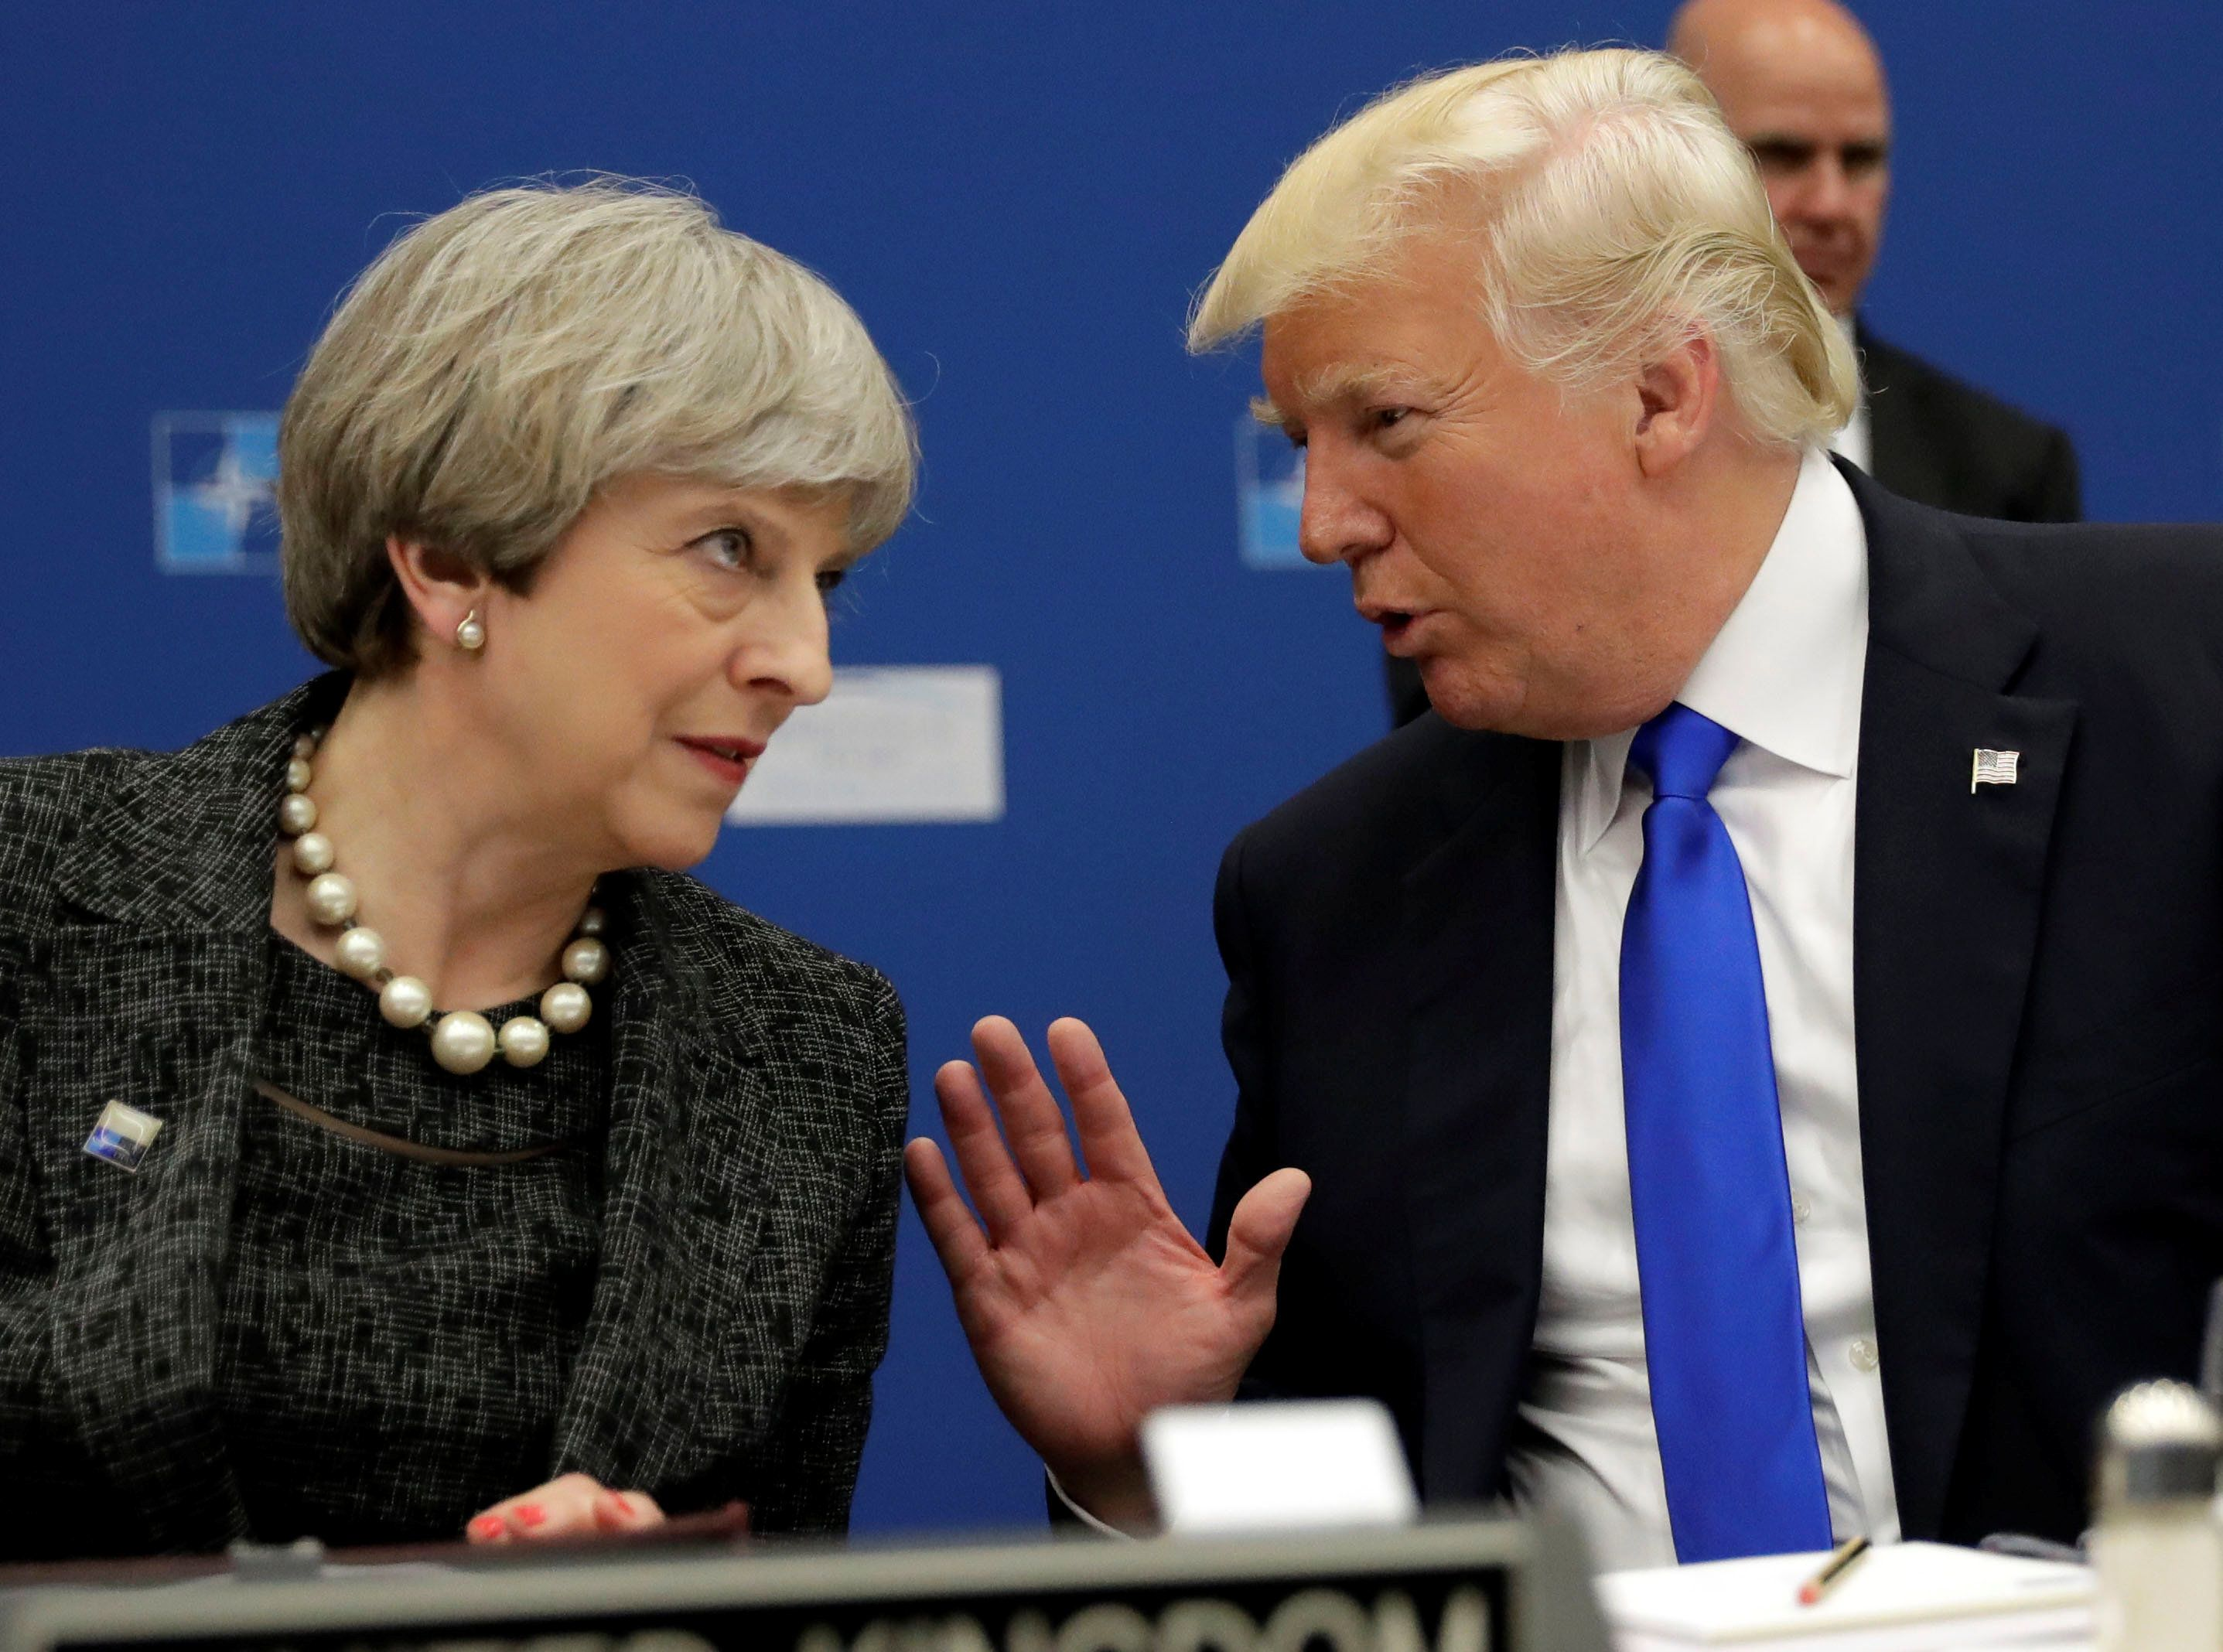 U.S. President Donald Trump (R) speaks to Britain's Prime Minister Theresa May during in a working dinner meeting at the NATO headquarters during a NATO summit of heads of state and government in Brussels, Belgium, May 25, 2017.     REUTERS/Matt Dunham/Pool